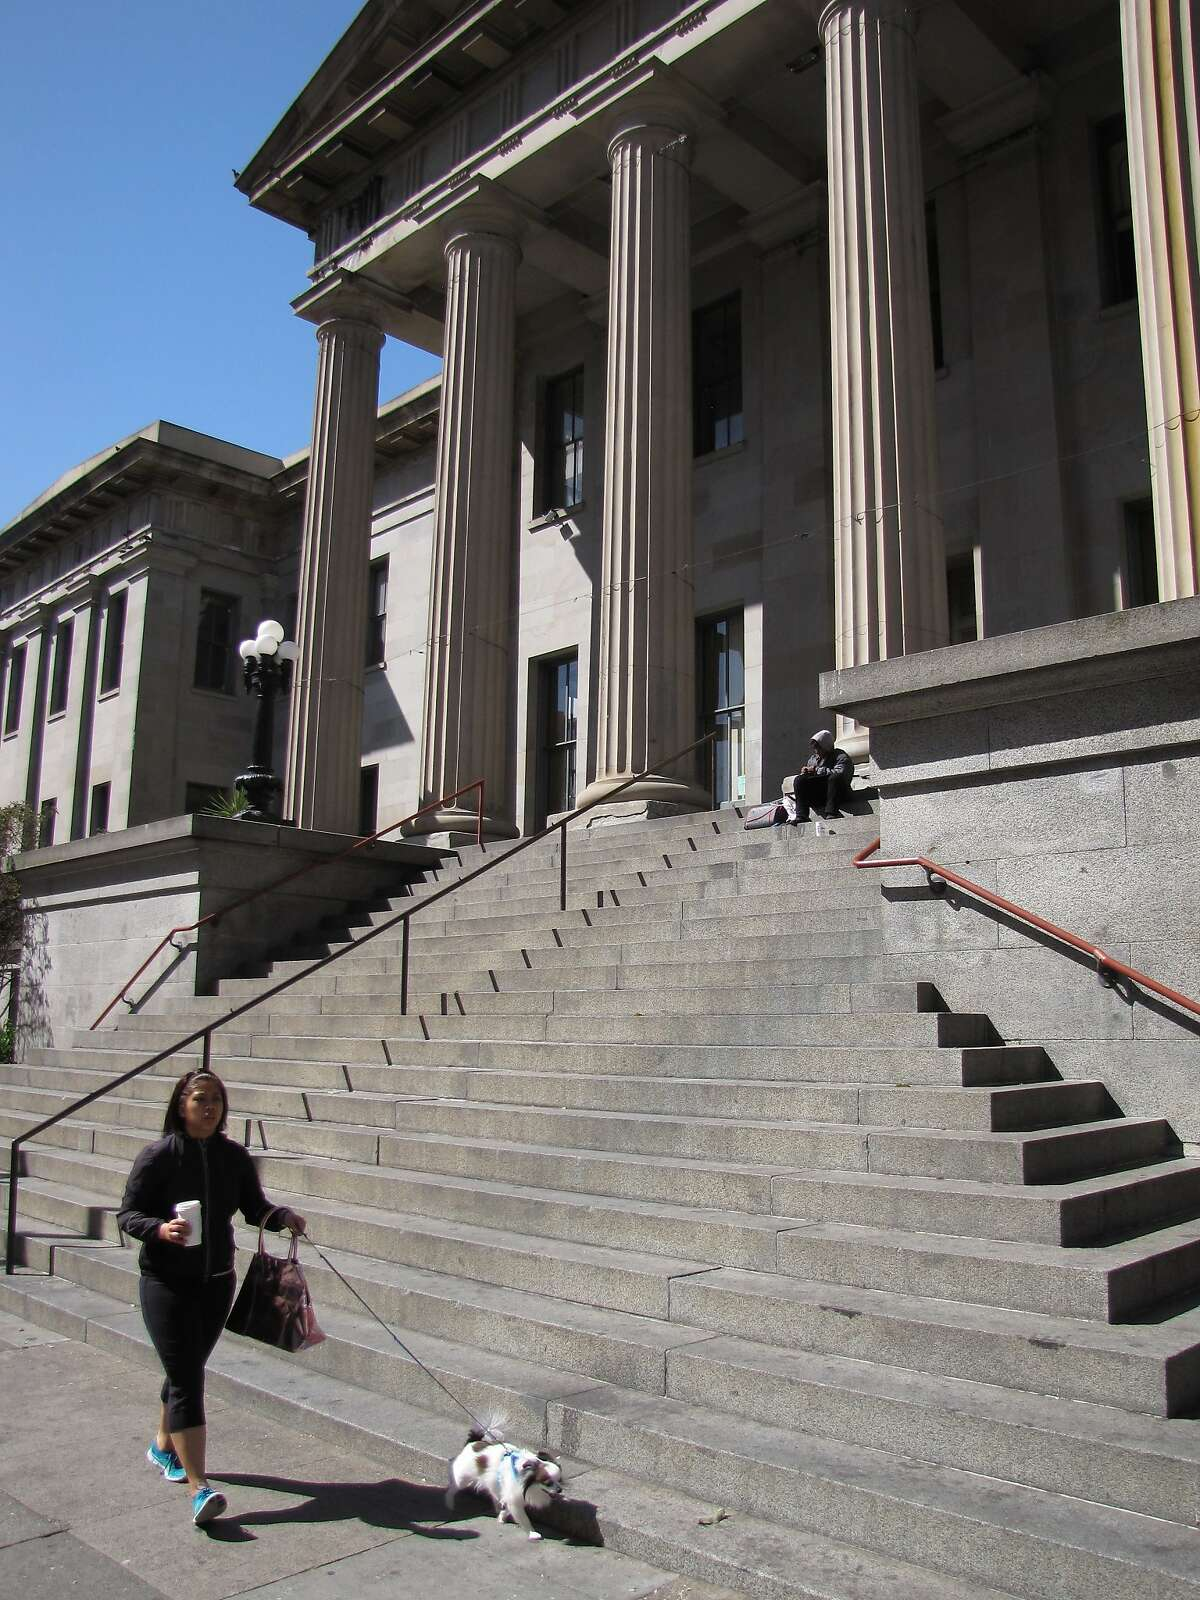 The Old U.S. Mint, built in 1874, sits empty and neglected even though the City of San Francisco owns it and awarded it in 2003 to a historical society that hoped to restore it as a museum, but couldn't raise the necessary funds.